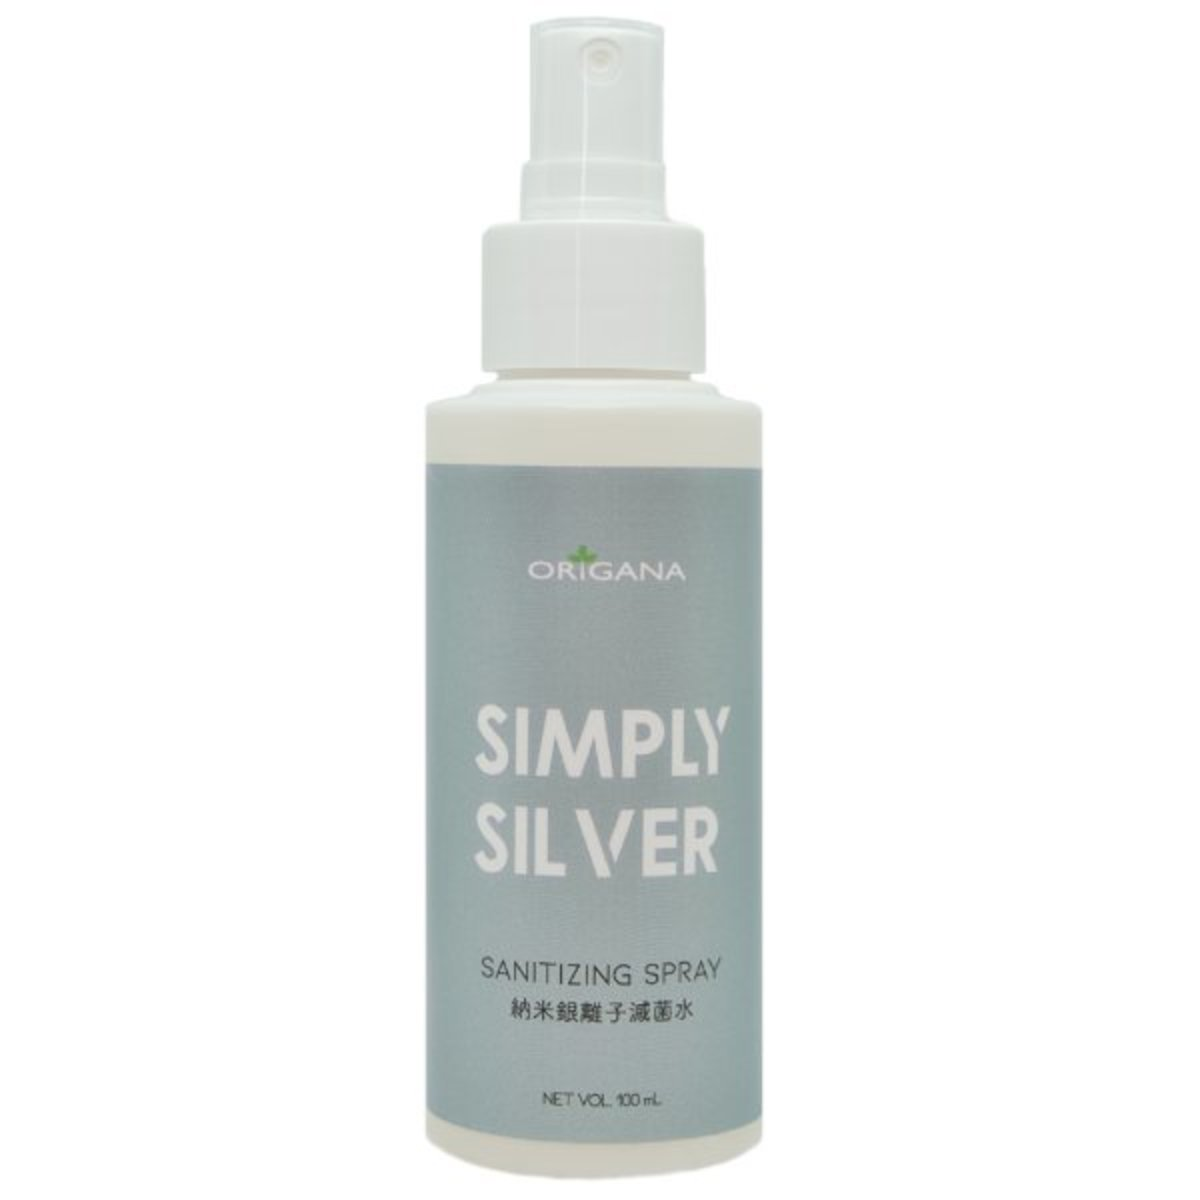 SIMPLY SILVER SANITIZING SPRAY (100ml)